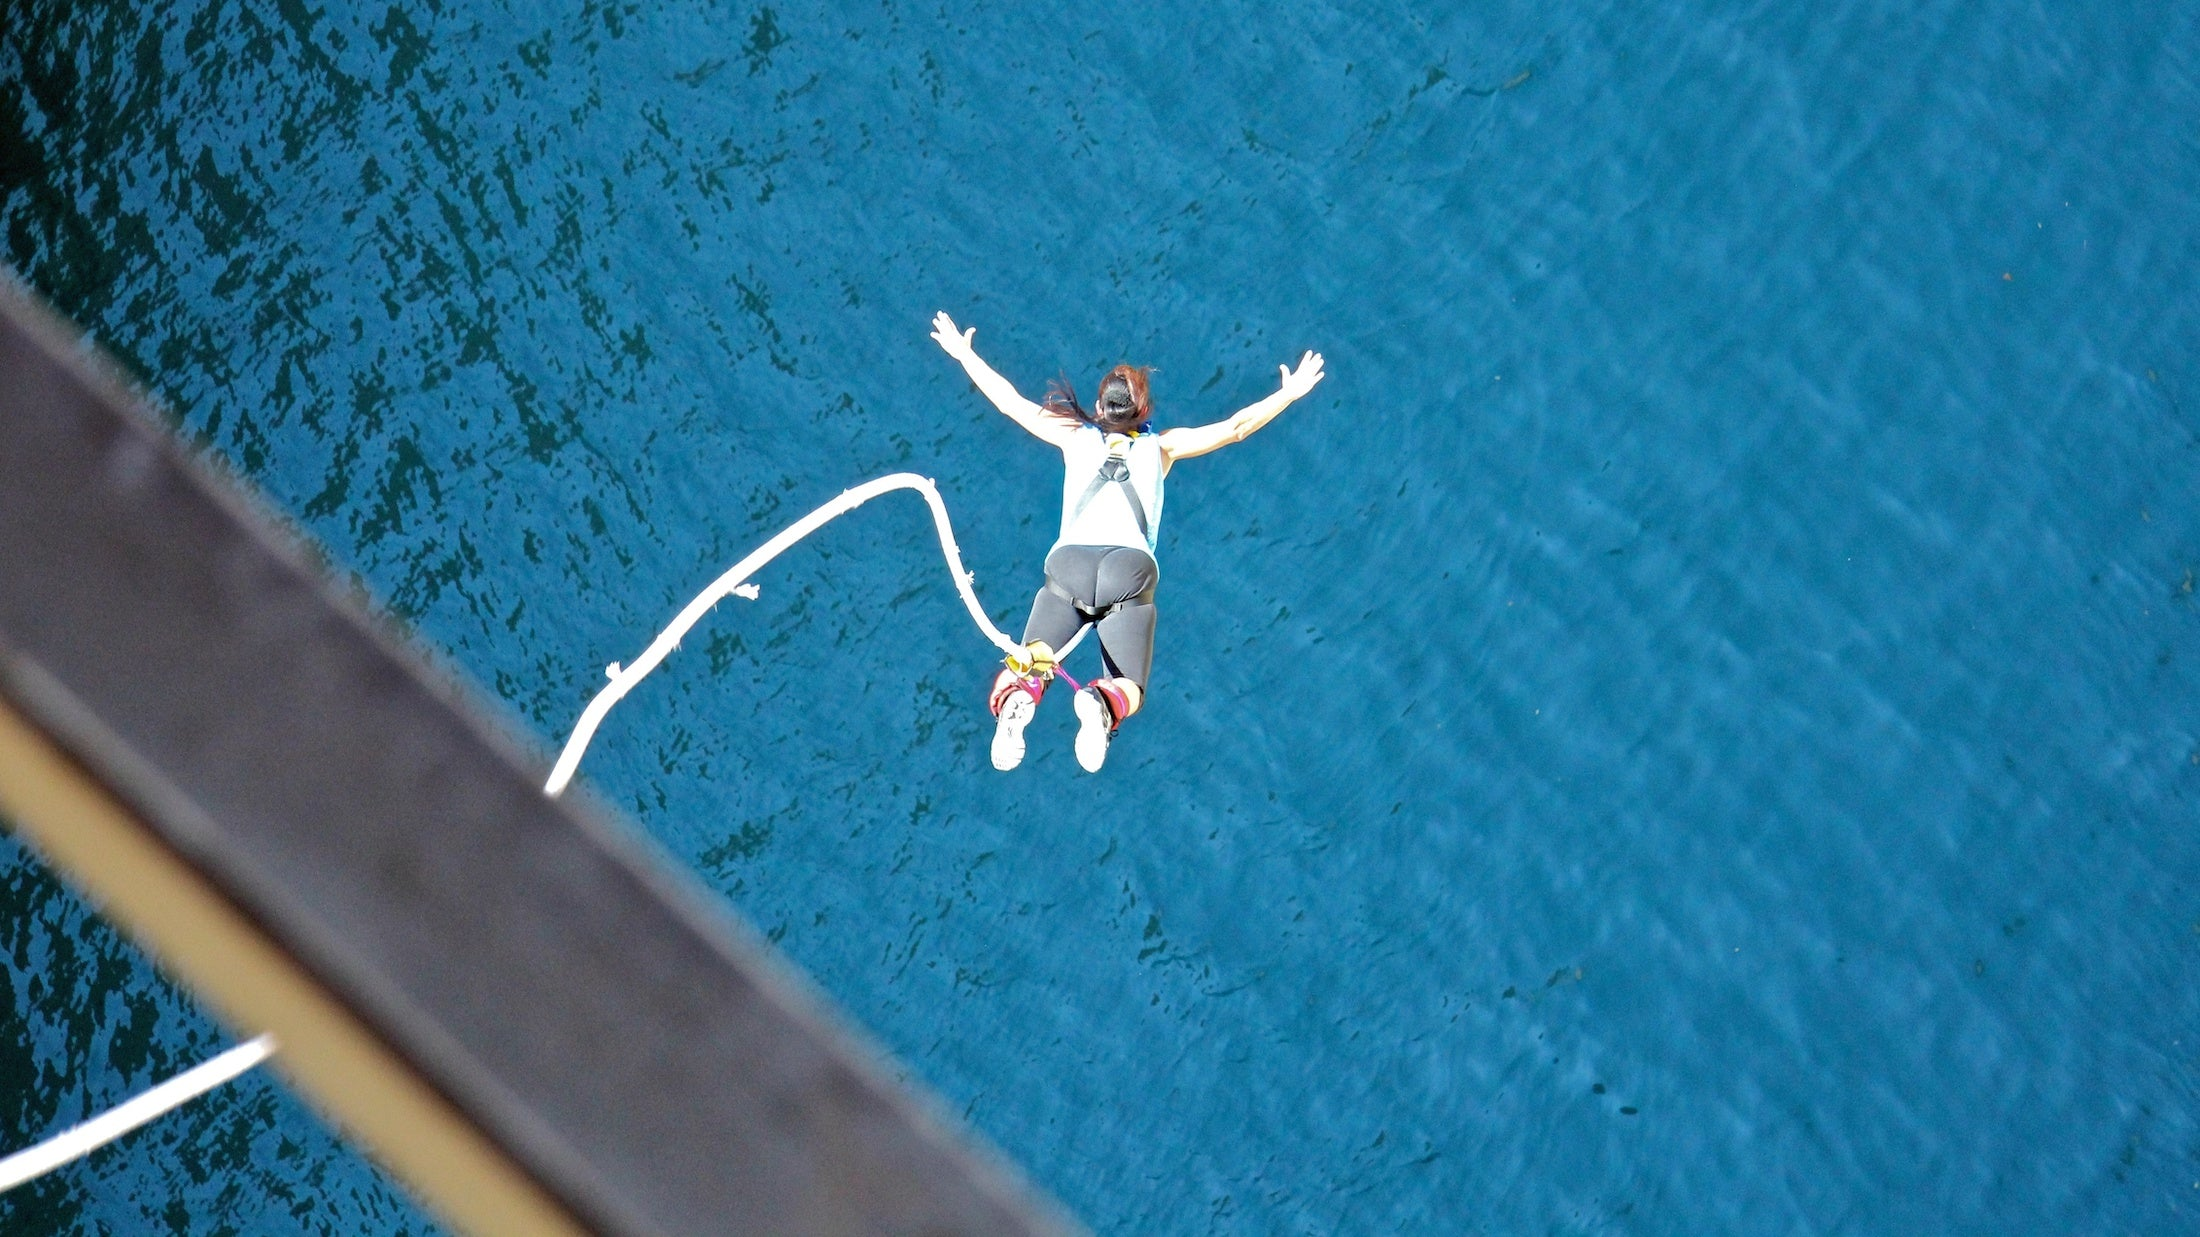 Club Fearless Test #15 Bungee Jump from 200 feet or higher